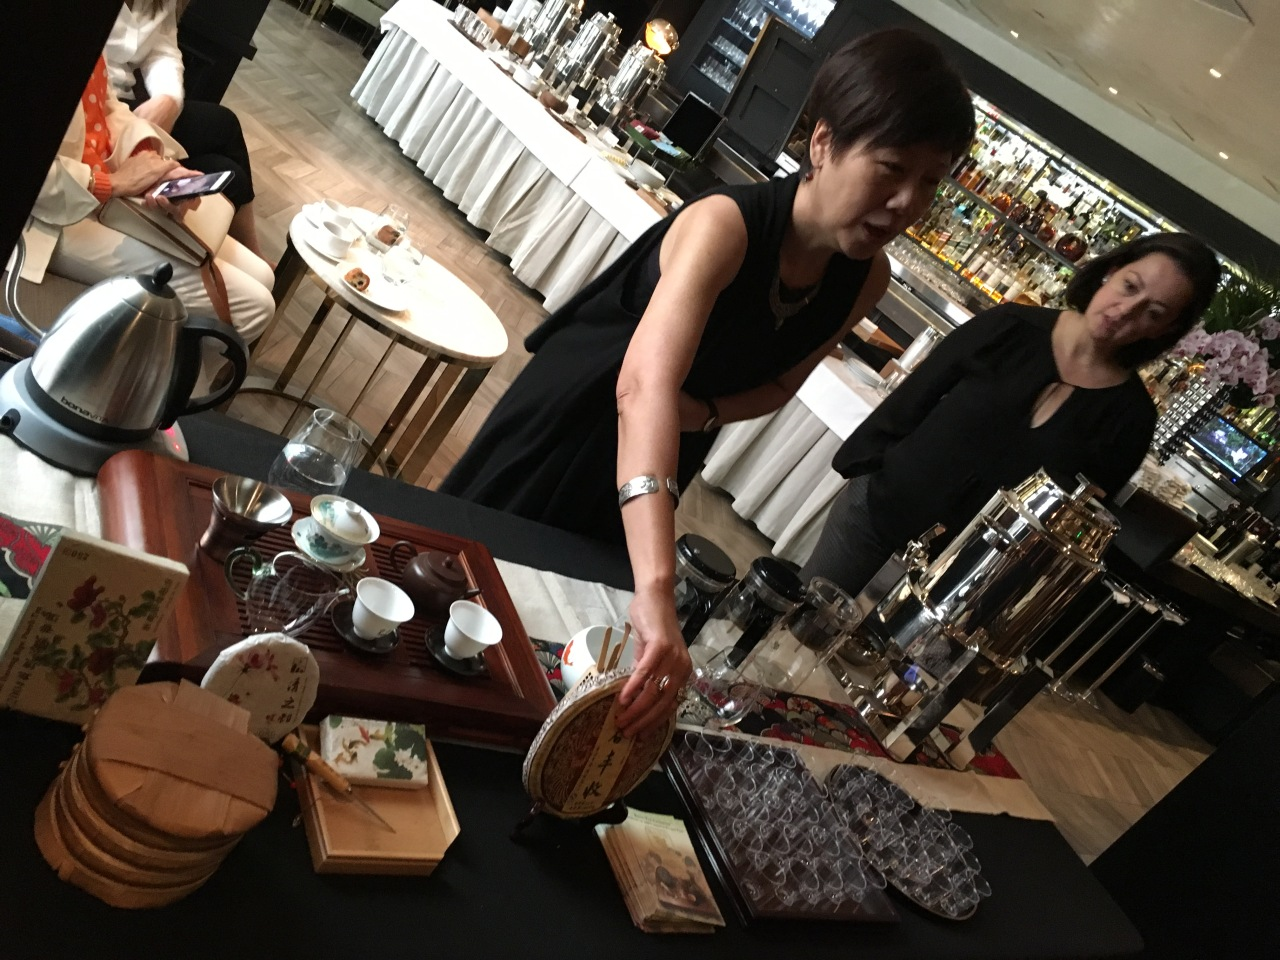 Pu-Erh tea tasting at Hotel Bel Air